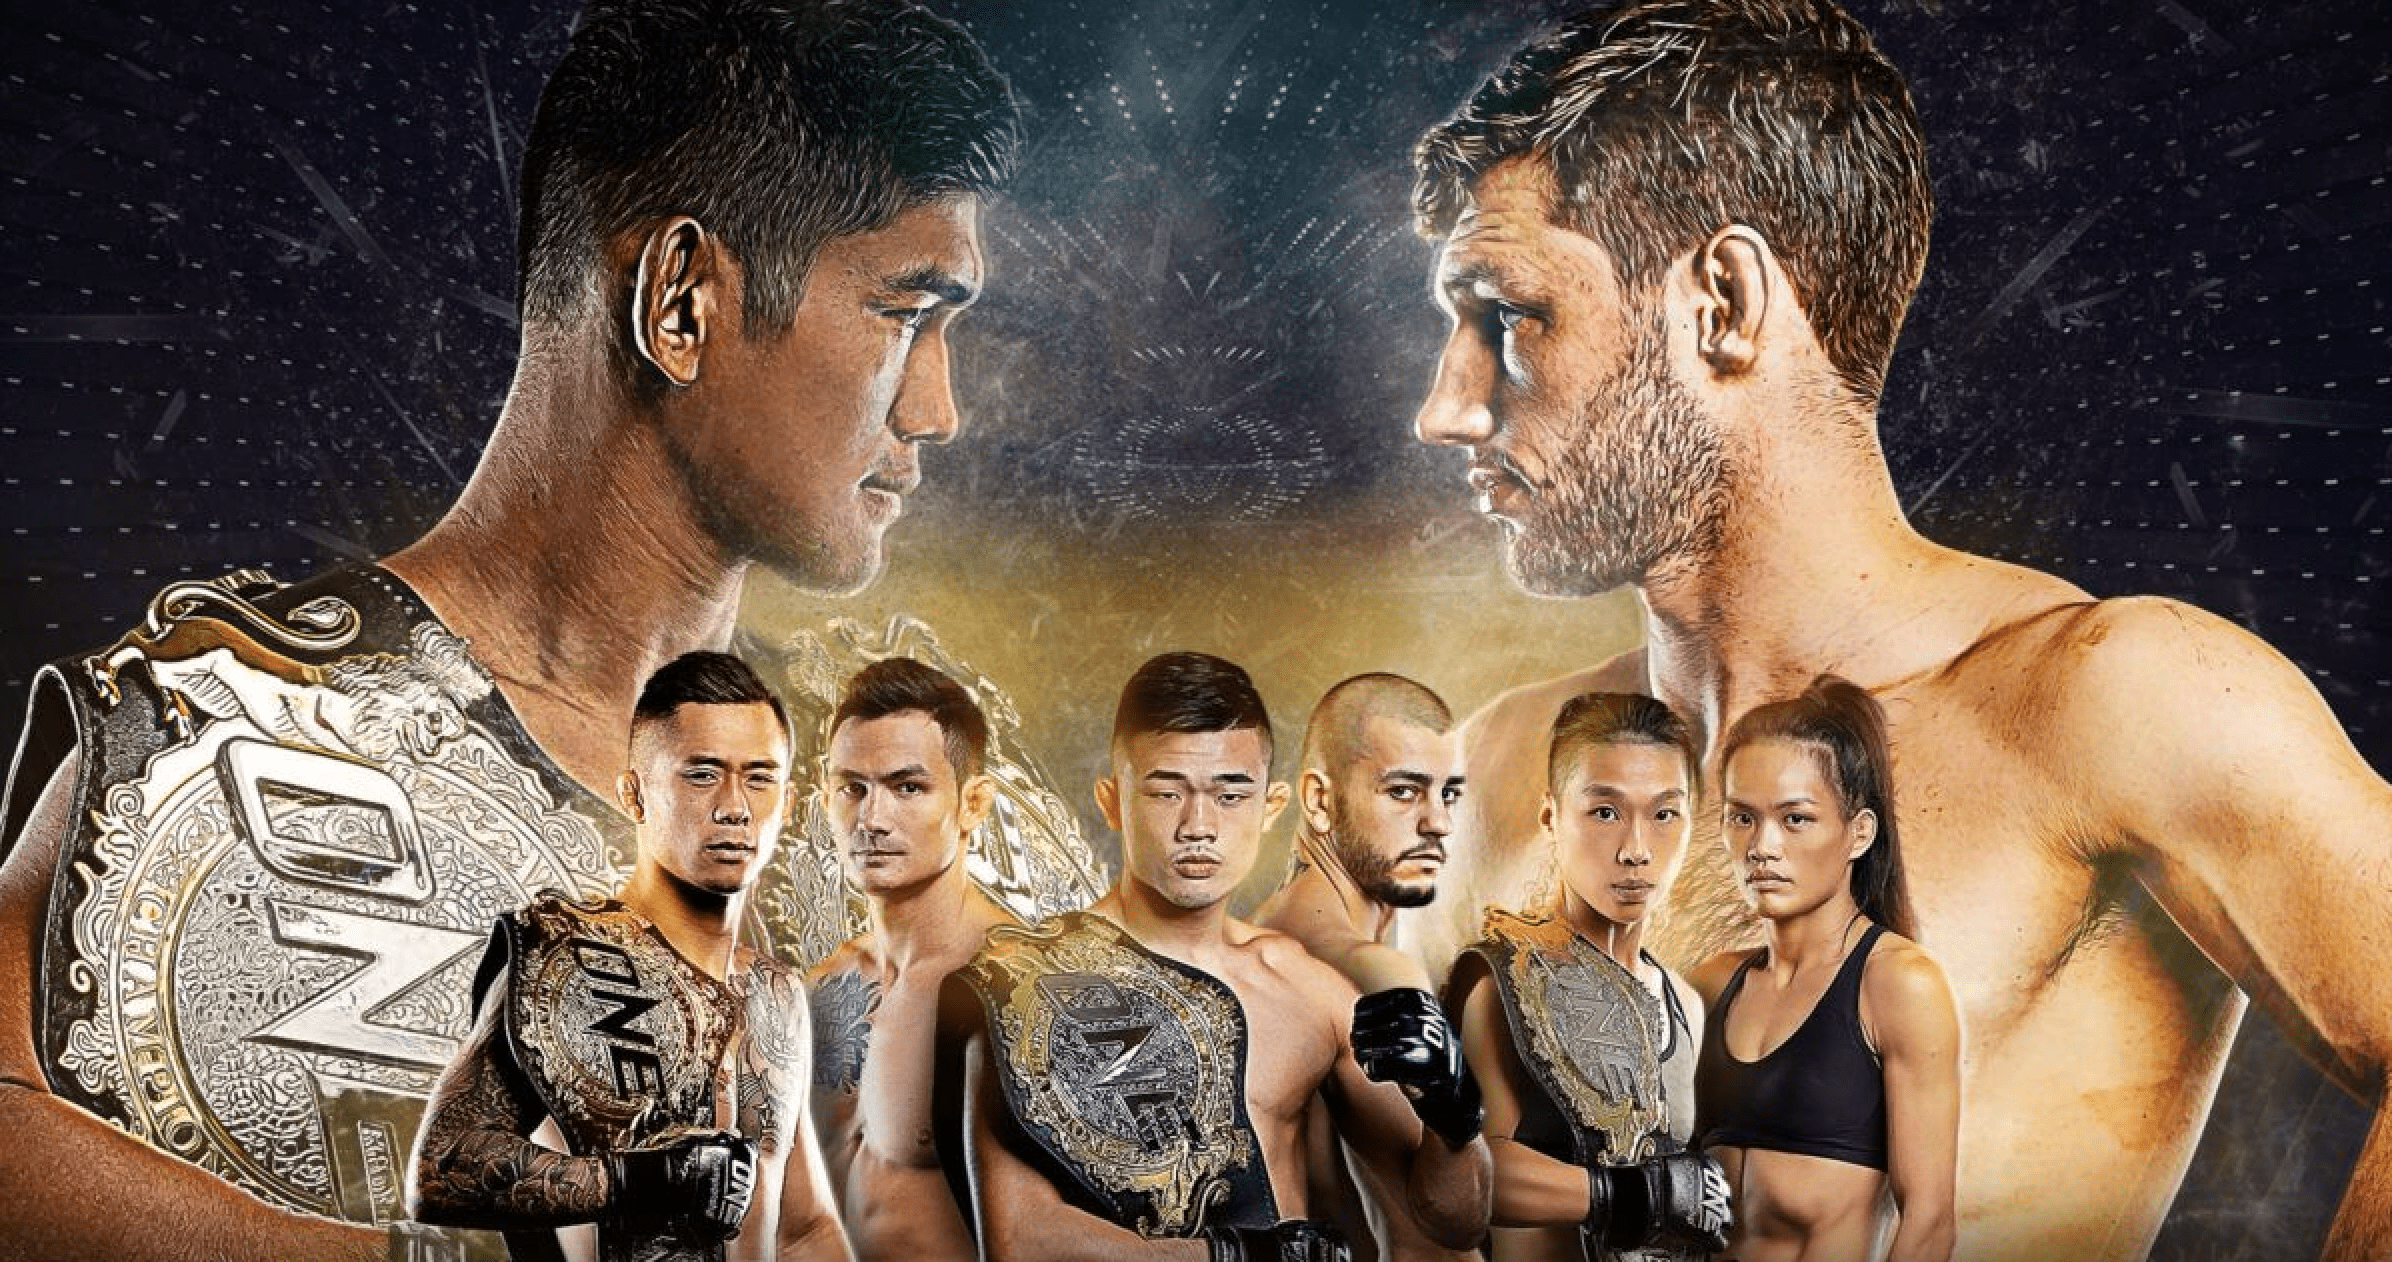 ONE Championship: Inside The Matrix